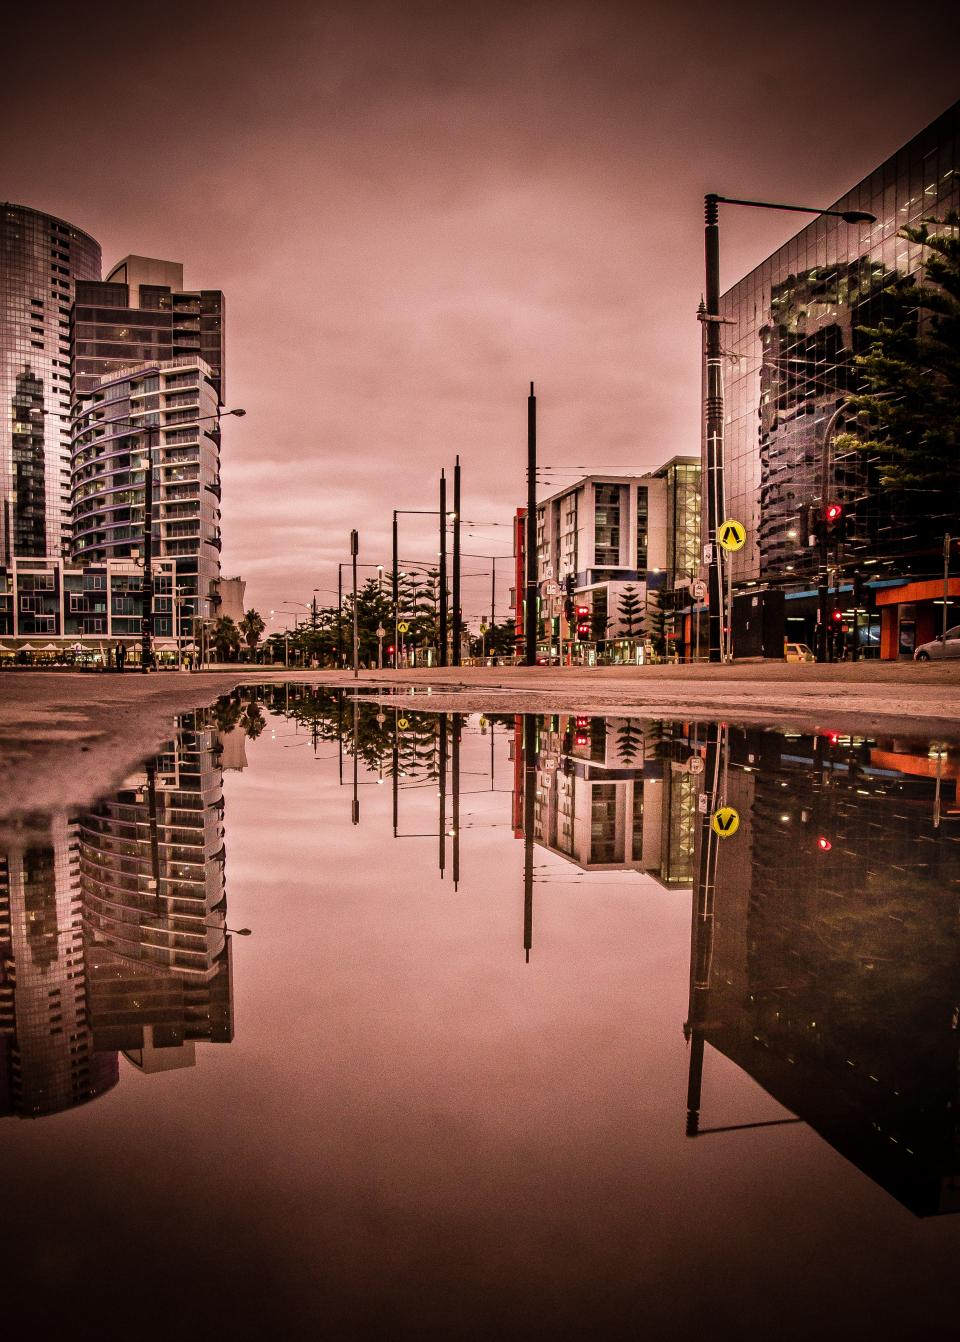 urban city reflection